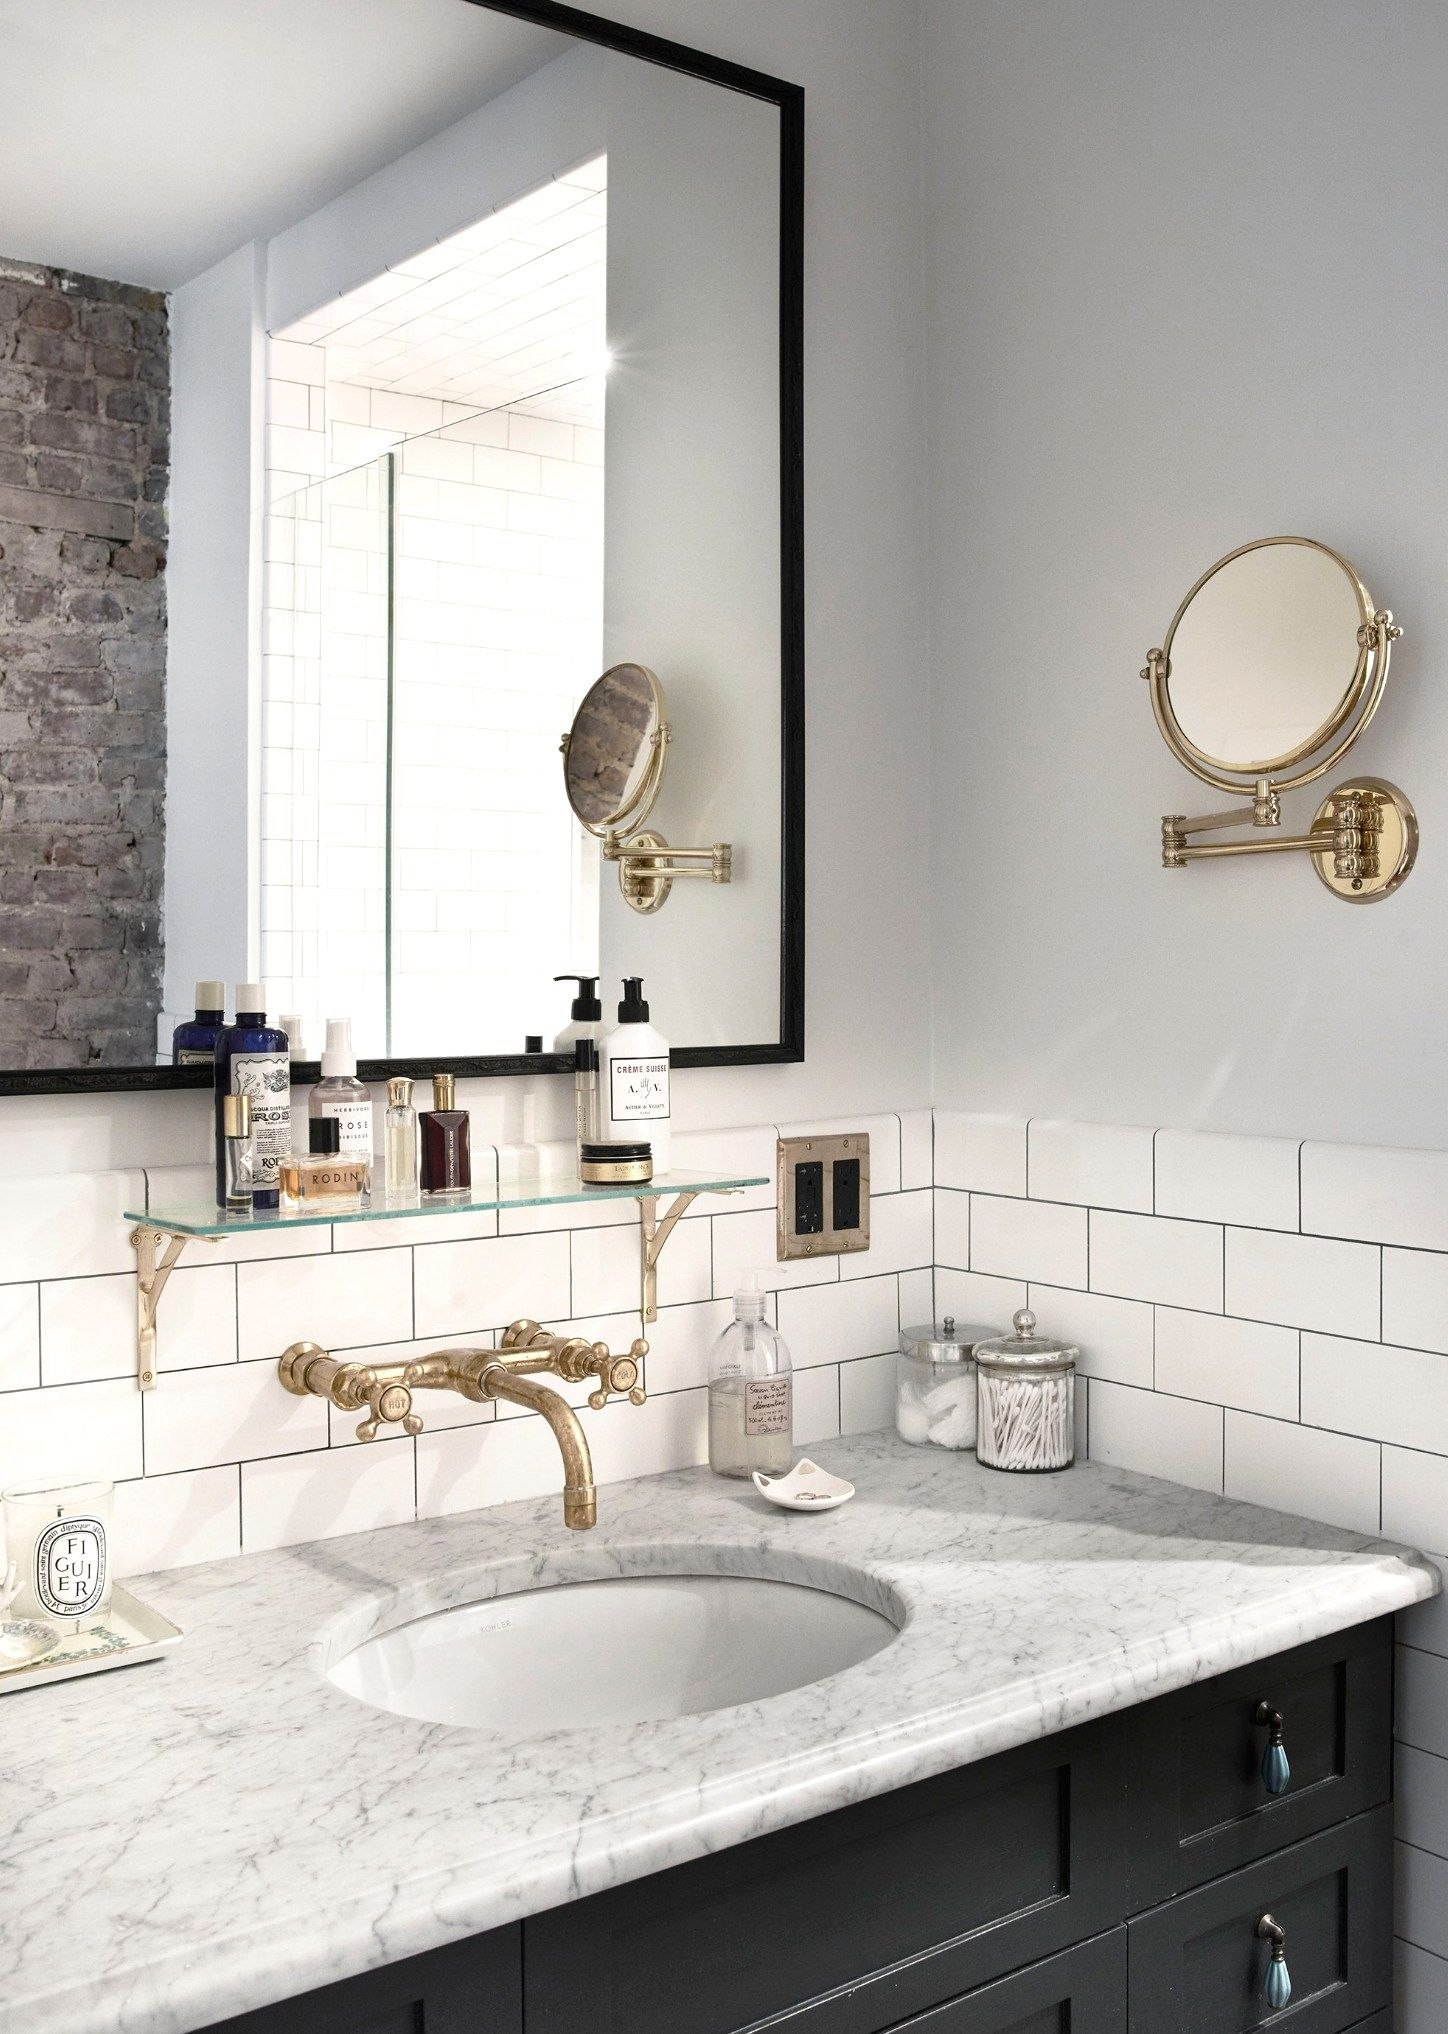 12 Brilliant Storage Ideas To Make The Most Of Your Small Bathroom